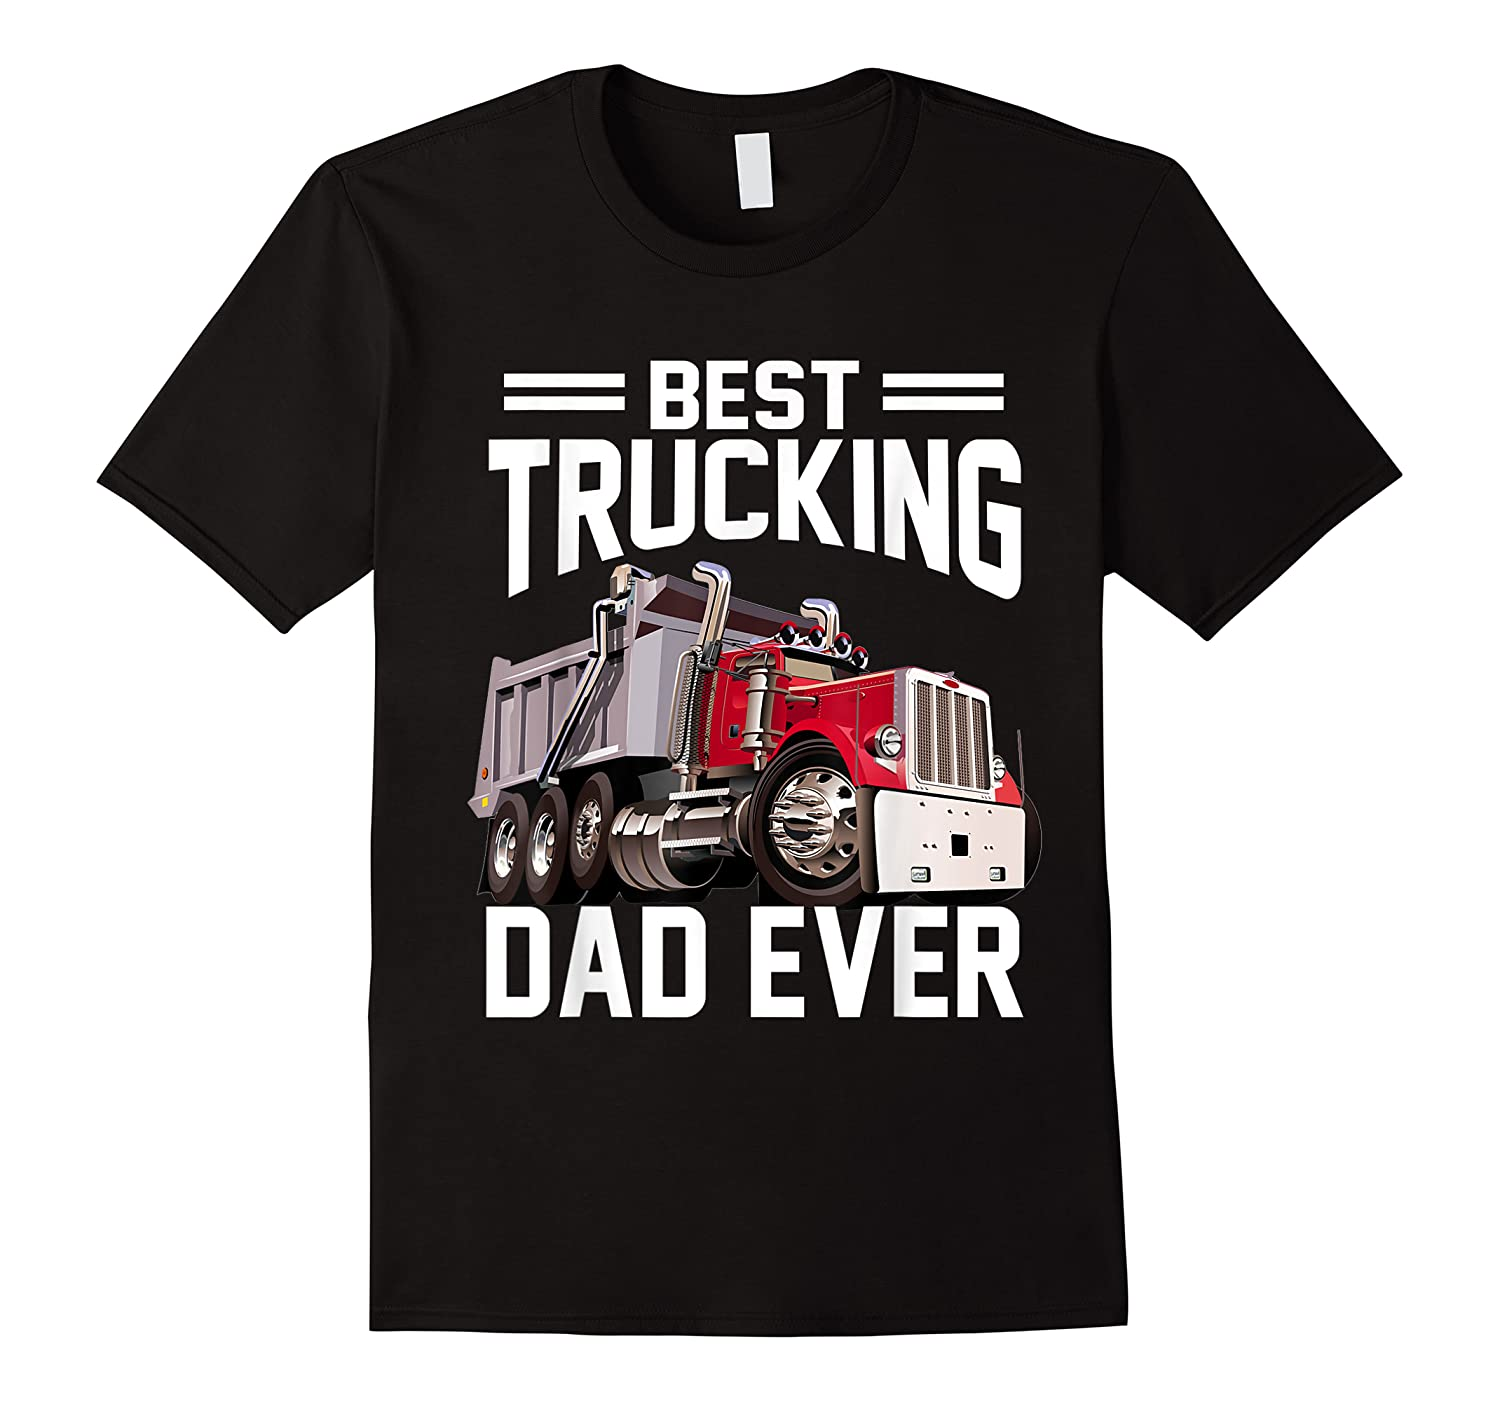 Best Trucking Dad Ever Father's Day Gift Shirts